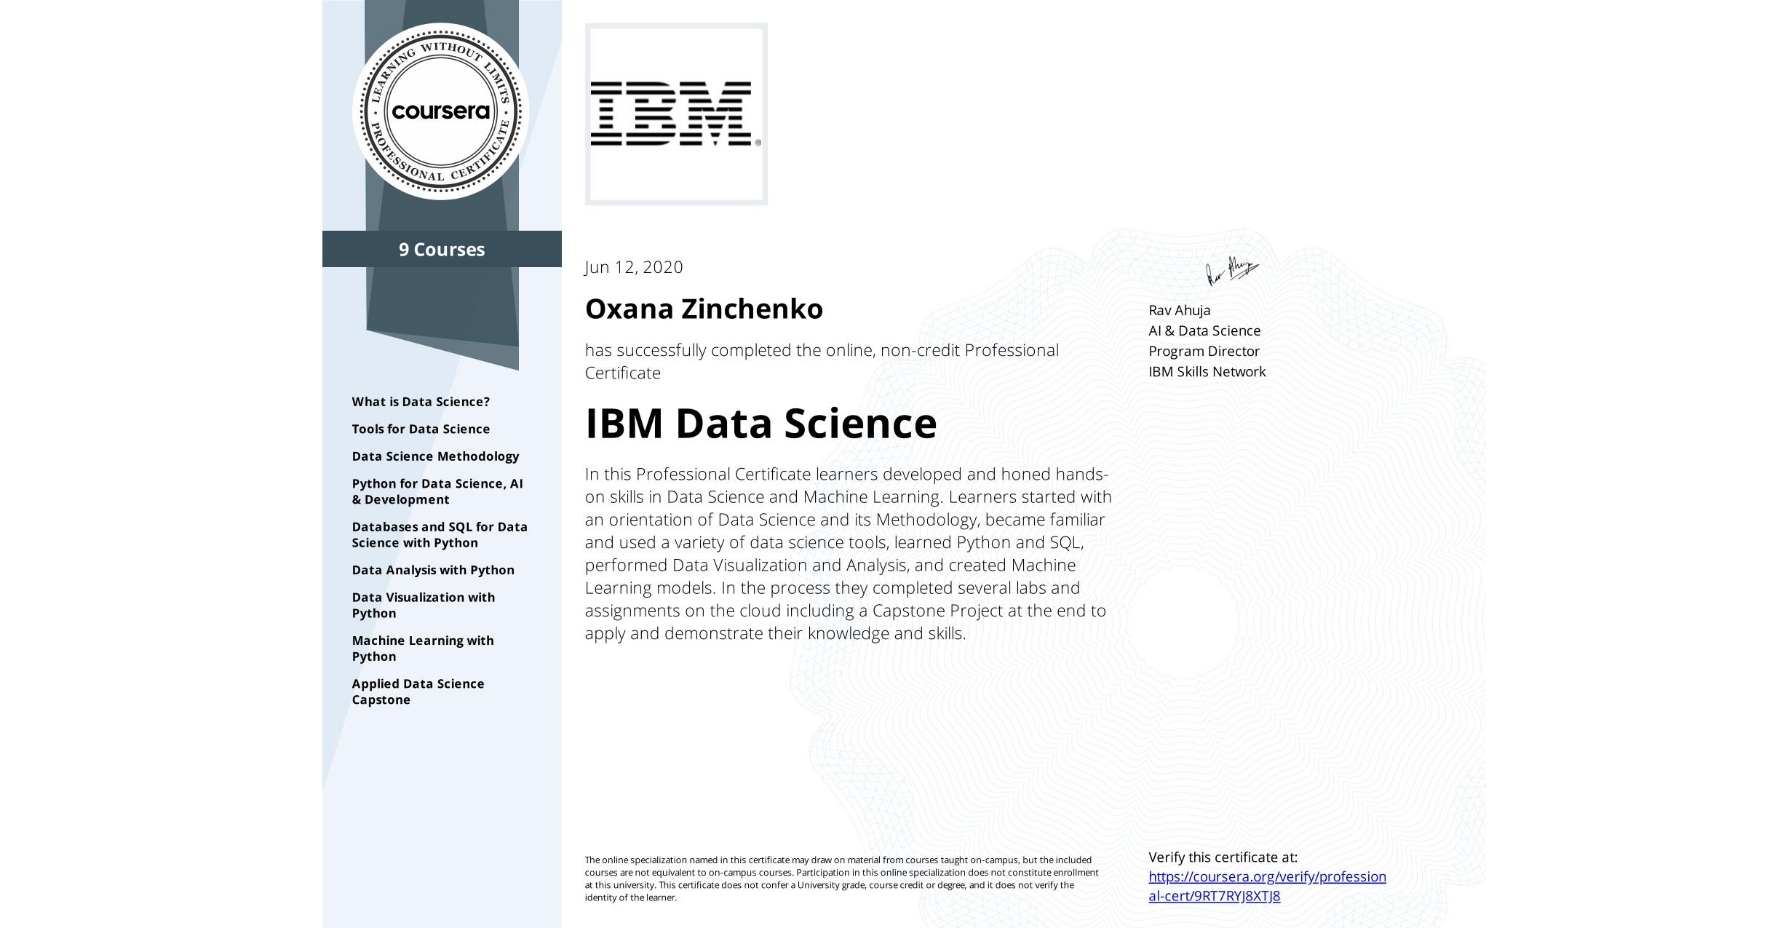 View certificate for Oxana Zinchenko, IBM Data Science, offered through Coursera. In this Professional Certificate learners developed and honed hands-on skills in Data Science and Machine Learning. Learners started with an orientation of Data Science and its Methodology, became familiar and used a variety of data science tools, learned Python and SQL, performed Data Visualization and Analysis, and created Machine Learning models.  In the process they completed several labs and assignments on the cloud including a Capstone Project at the end to apply and demonstrate their knowledge and skills.